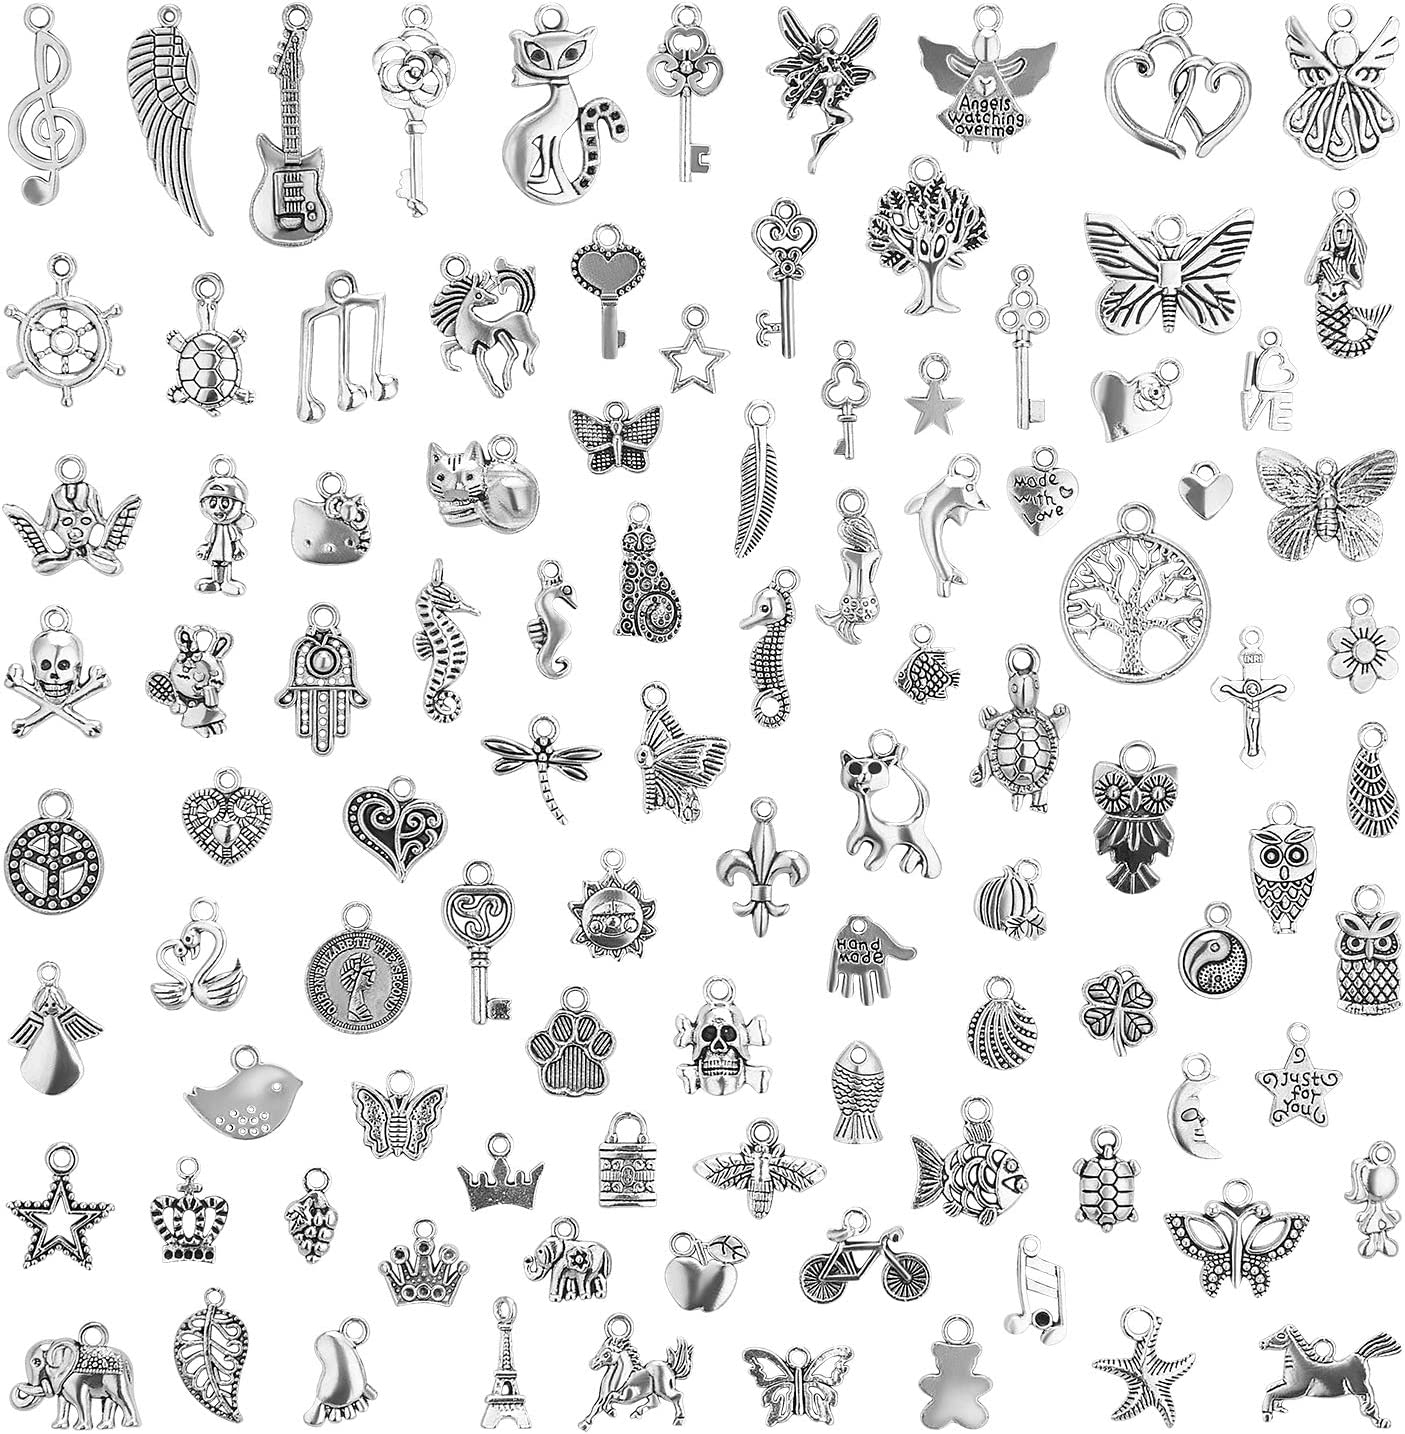 Wholesale 200 Pieces Antique Silver Bulk Mixed Charms Pendants for DIY Necklaces Fashion Accessories Bracelets Bangles Jewelry Making